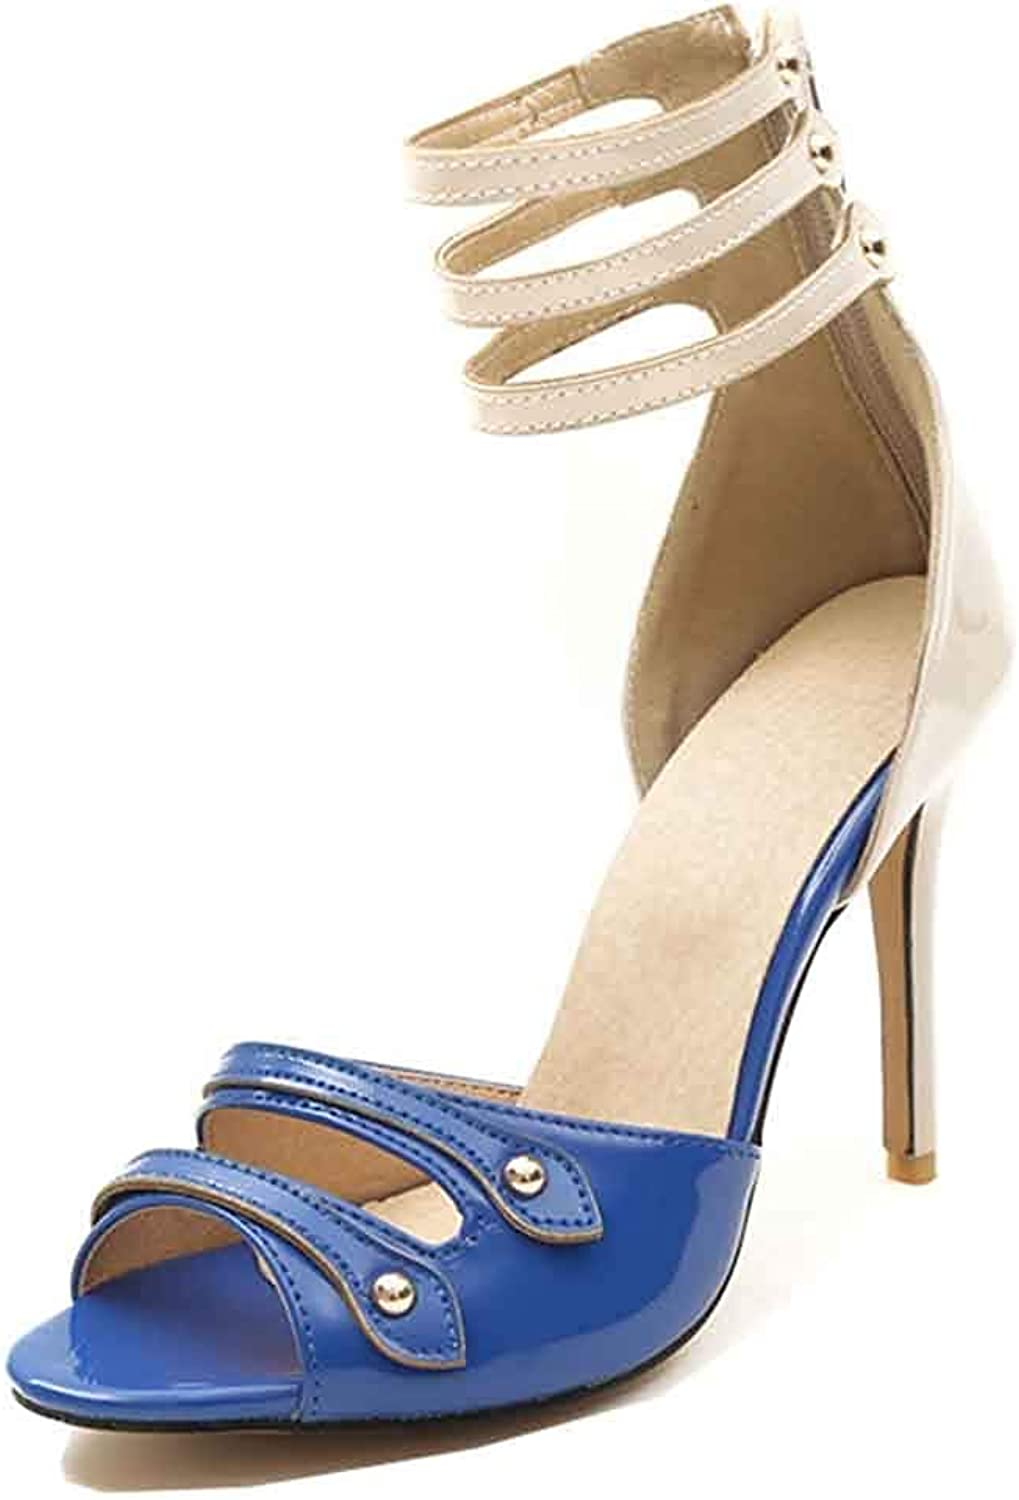 Unm Women's Peep Toe Sandals with Ankle Strap - Burnished Zipper Stilettos - Sexy High Heels